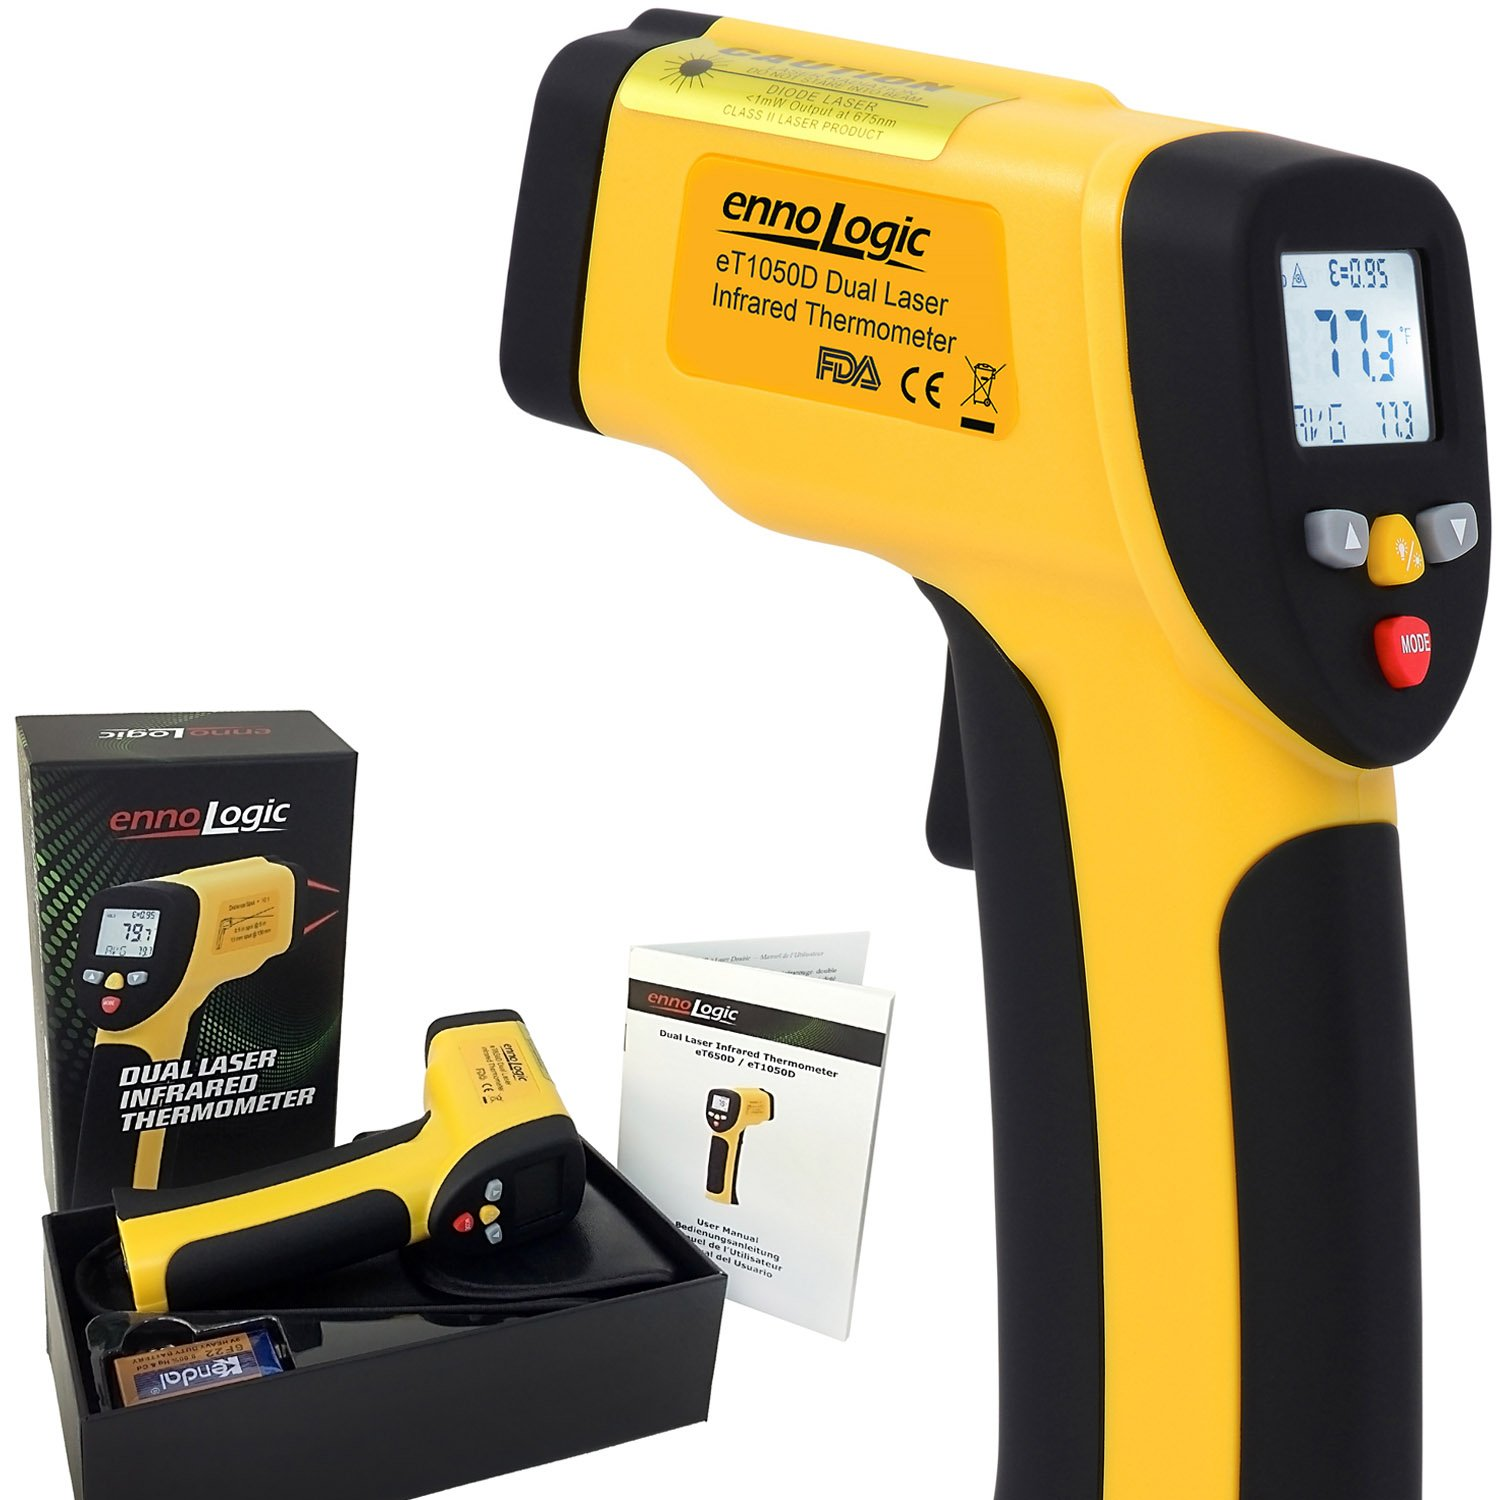 Temperature Gun by ennoLogic - Accurate High Temperature Dual Laser Infrared Thermometer -58°F to 1922°F - Digital Surface IR Thermometer eT1050D w/NIST Certificate by ennoLogic